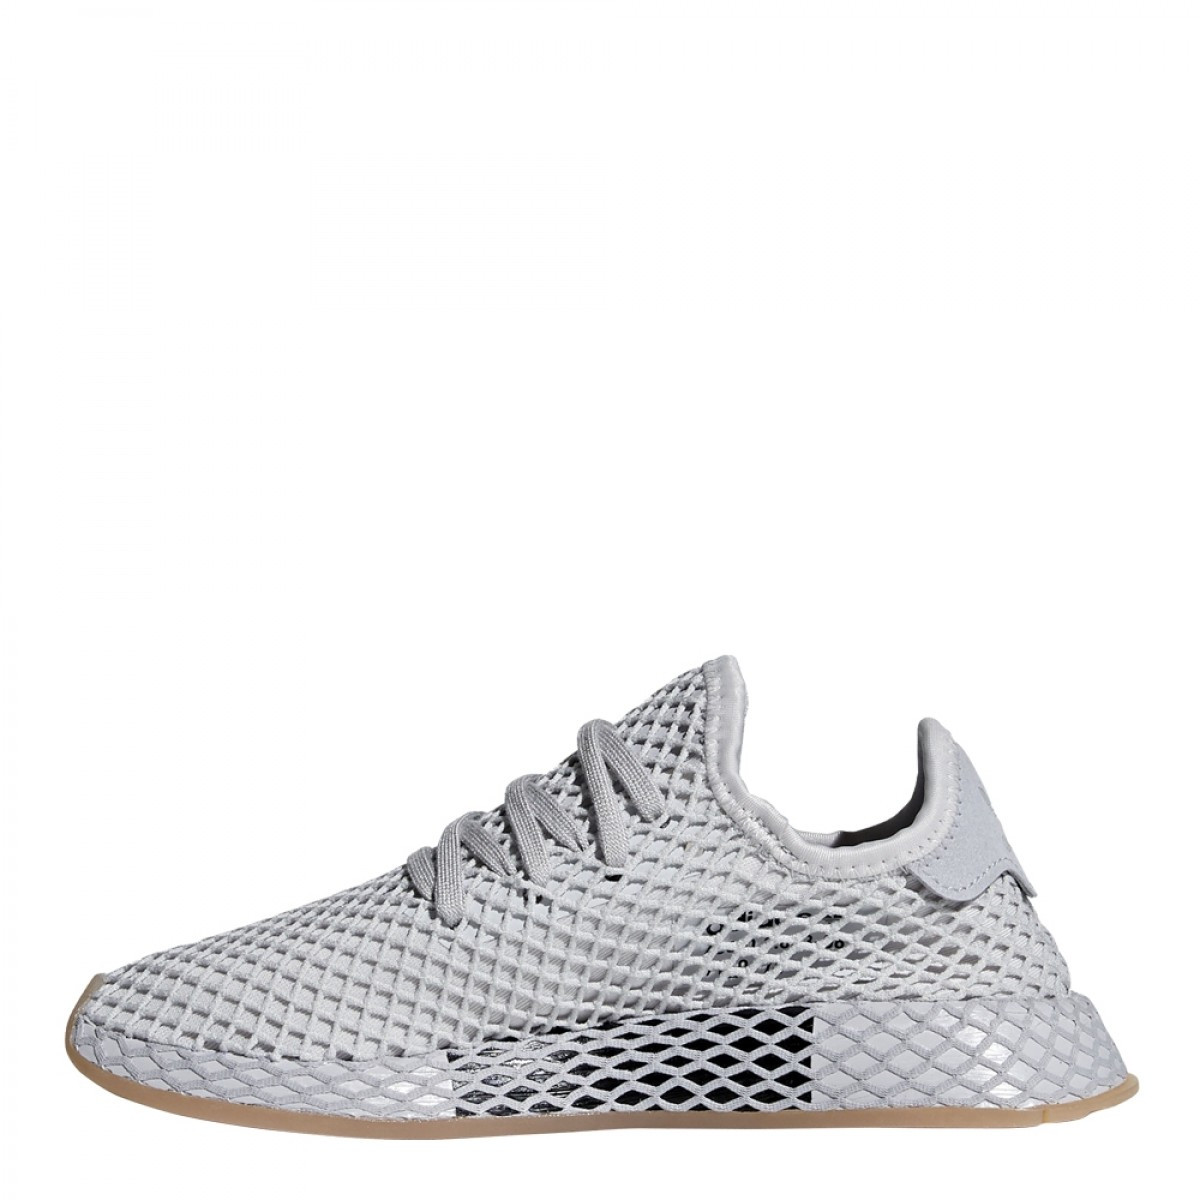 sports shoes d391d 1d738 Basket adidas Originals Deerupt Runner Junior - Ref. CQ2936. Loading zoom